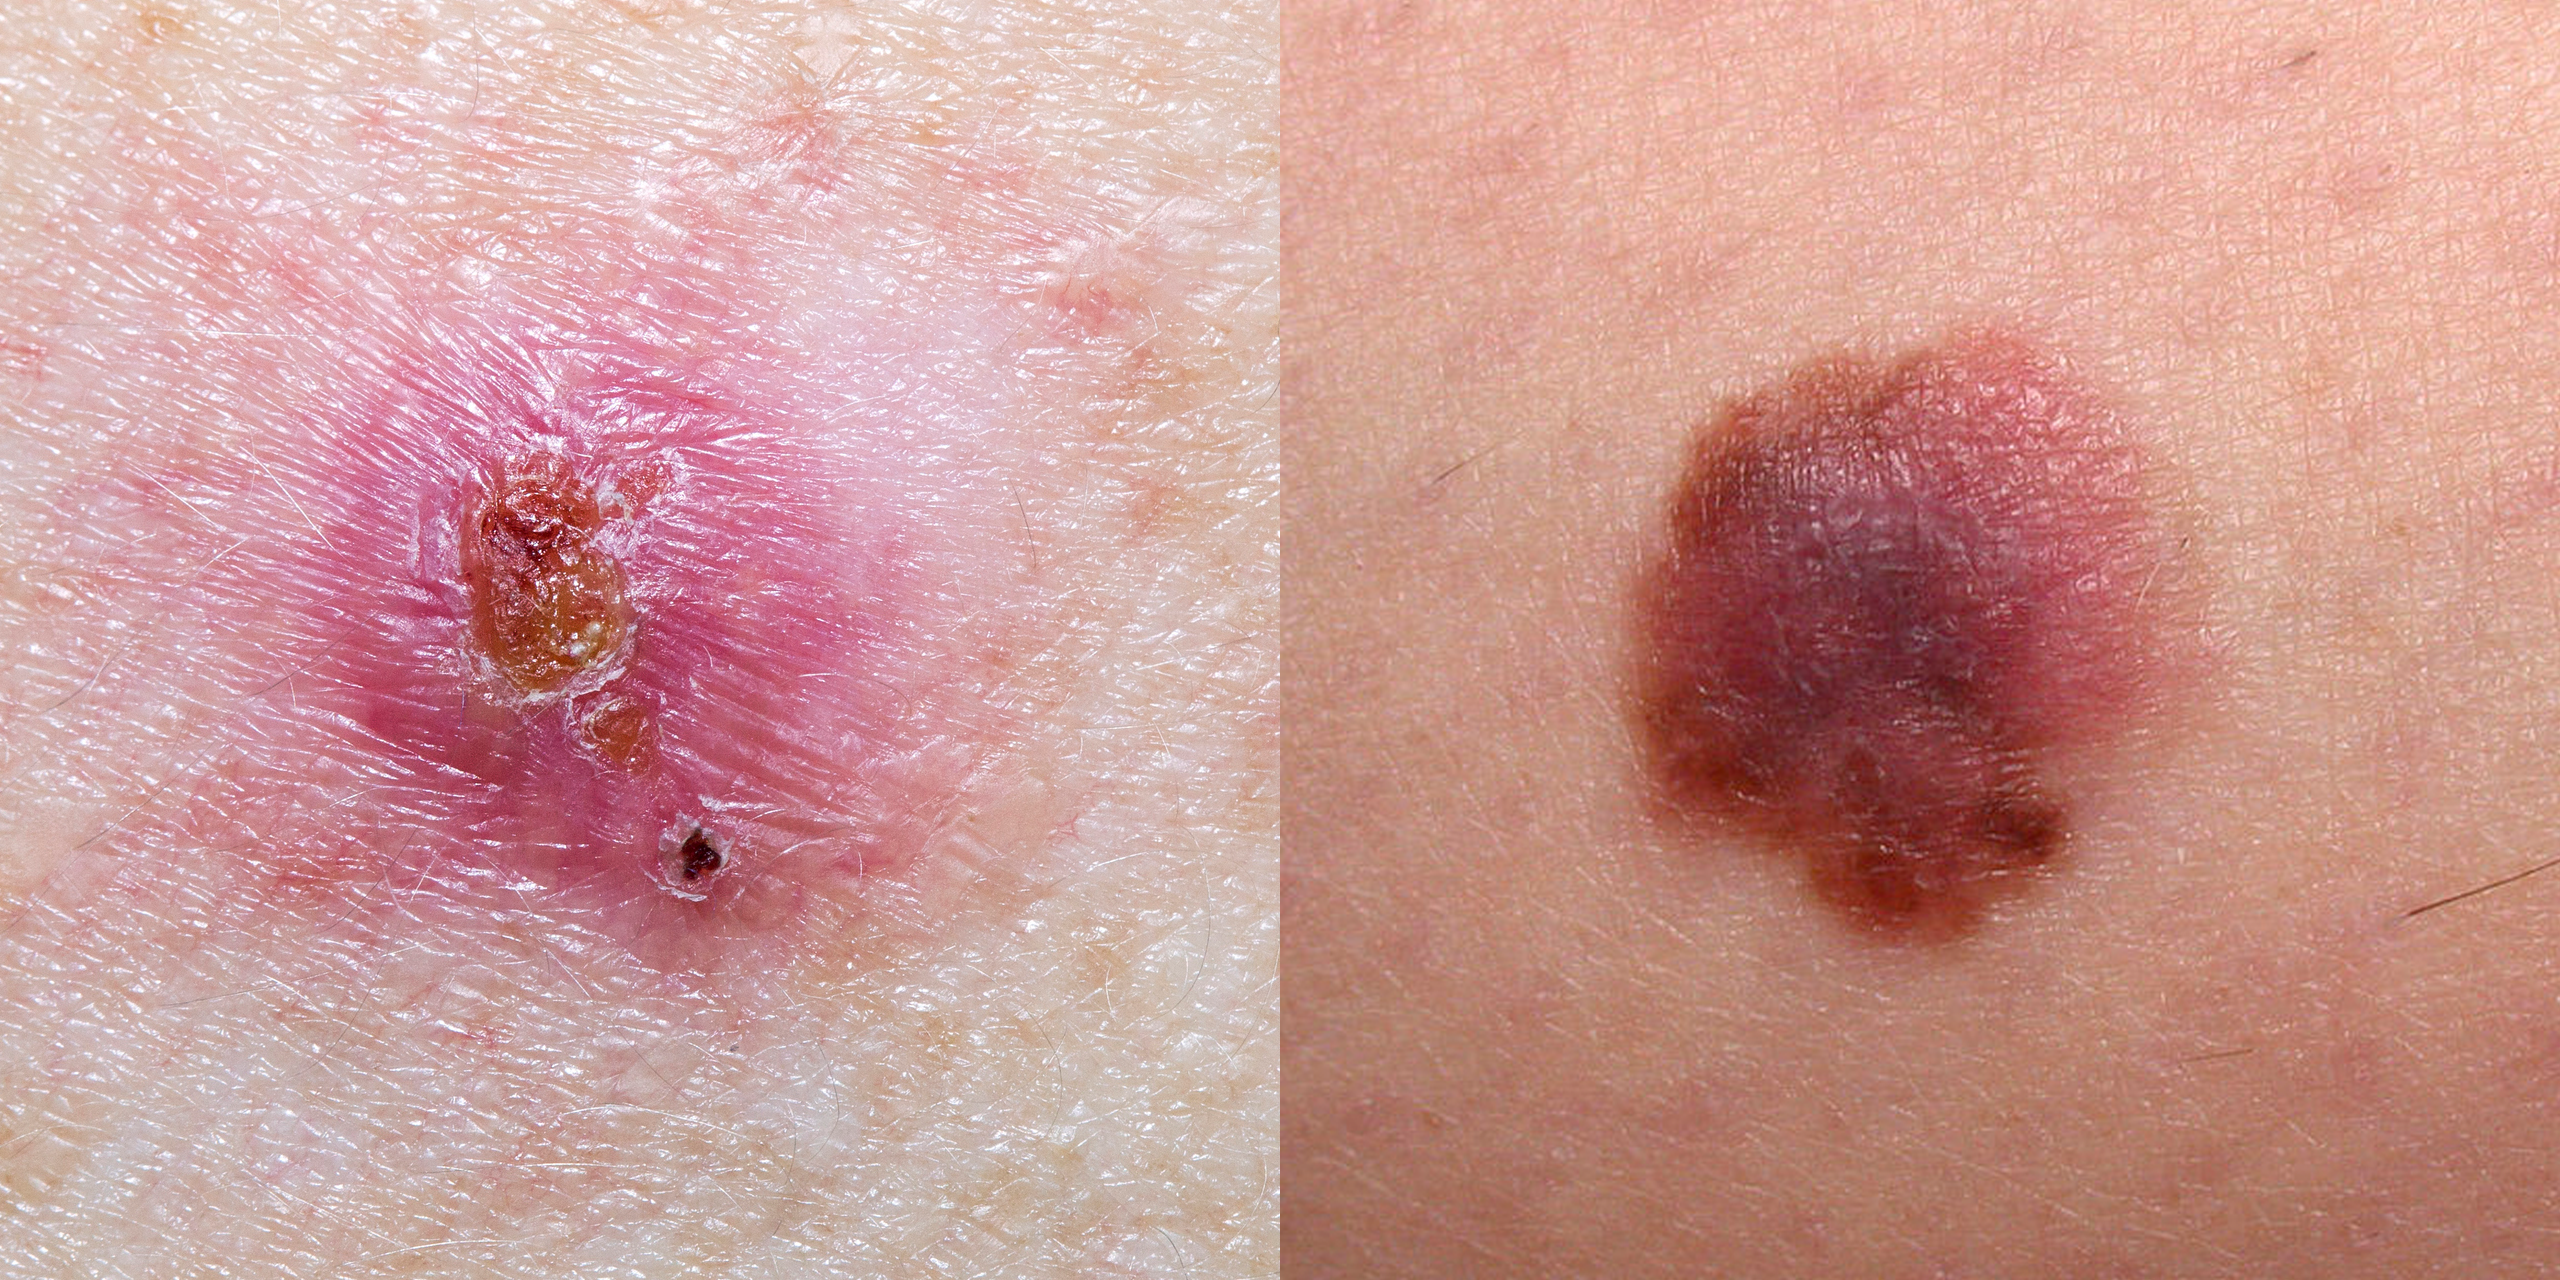 Skin Cancer Pictures 5 Different Types Of Skin Cancer To Know